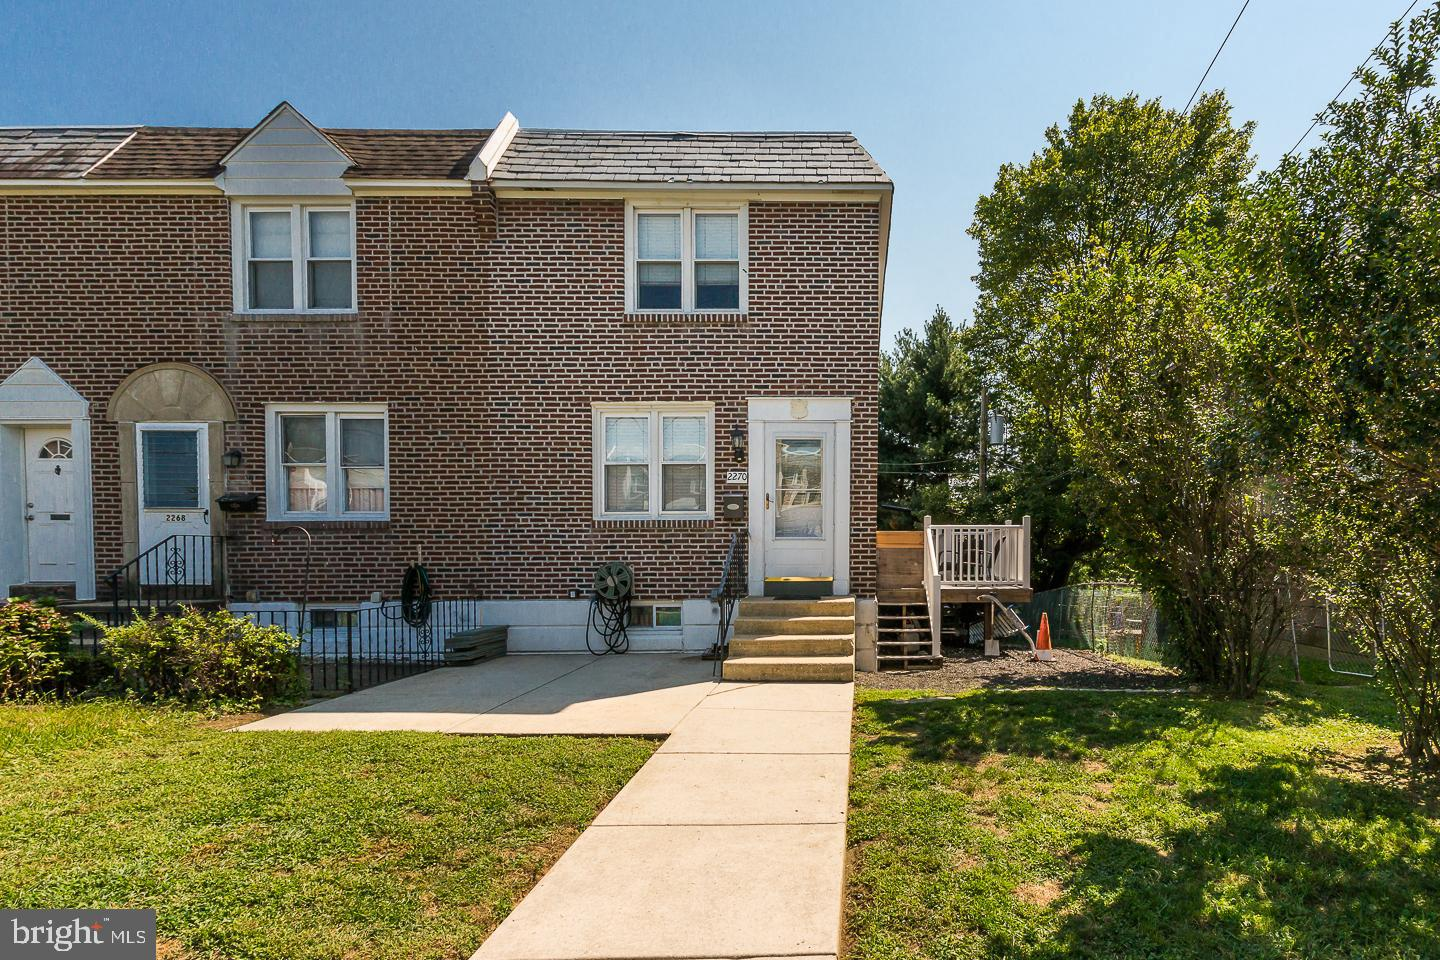 2270 S Harwood Avenue Upper Darby, PA 19082